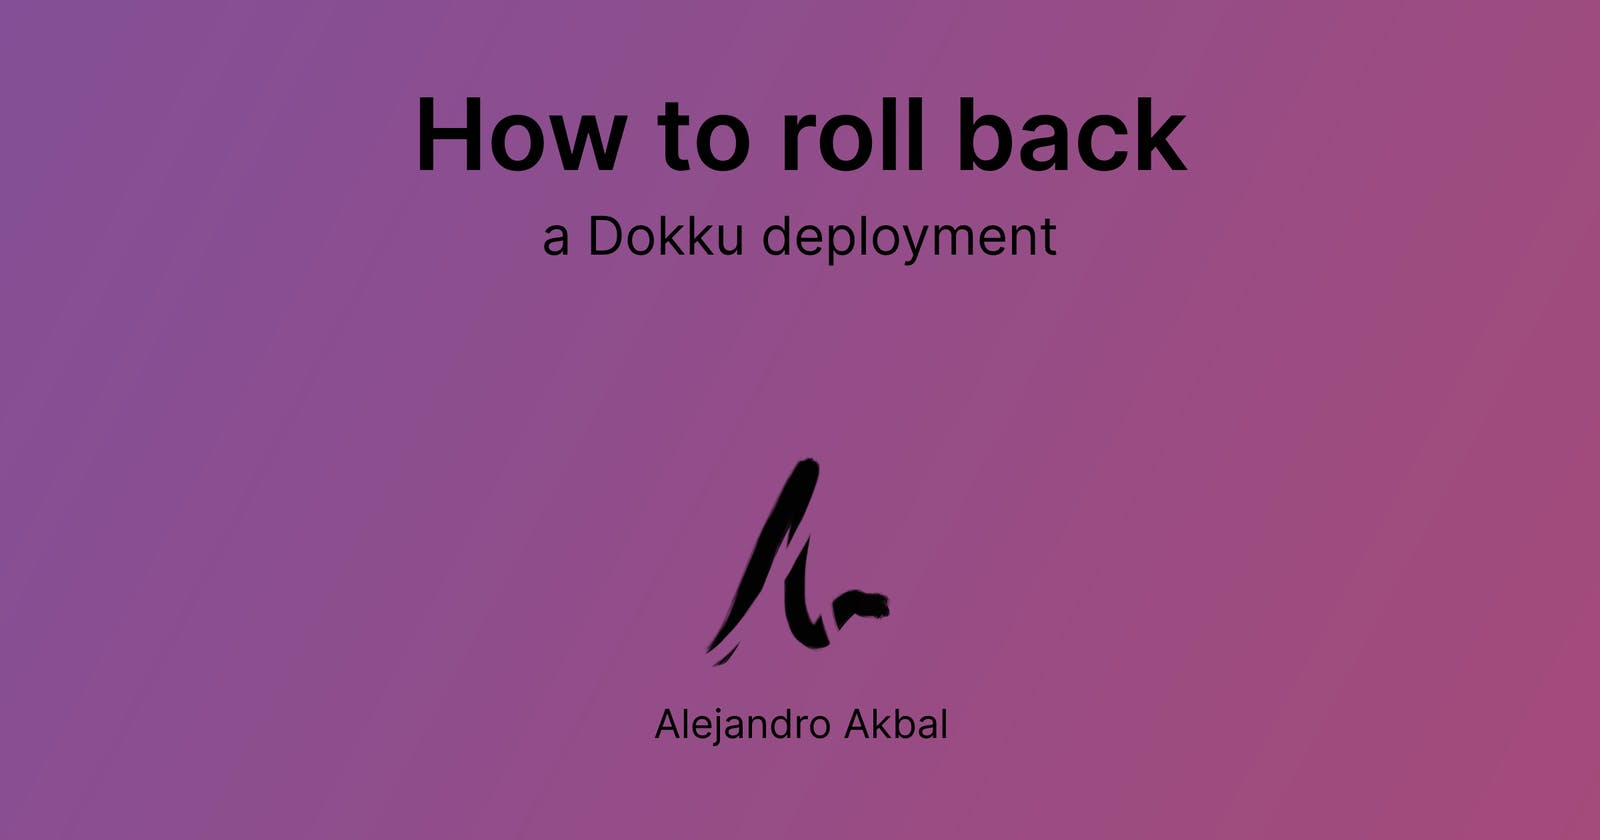 How to roll back a Dokku deployment